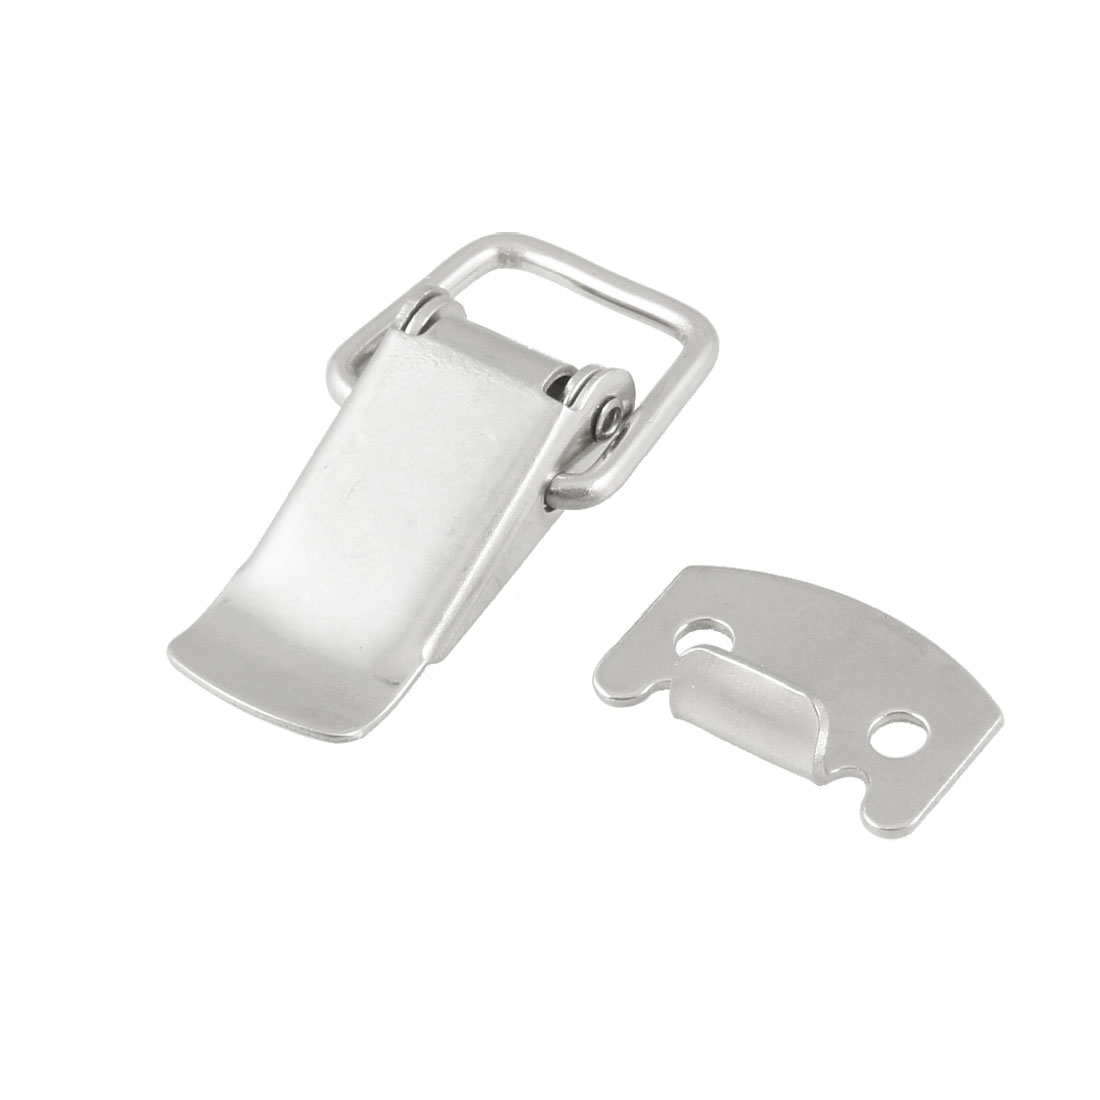 Hardware Stainless Steel Spring Loaded Toggle Latch Catch Hasp for Chests Cases